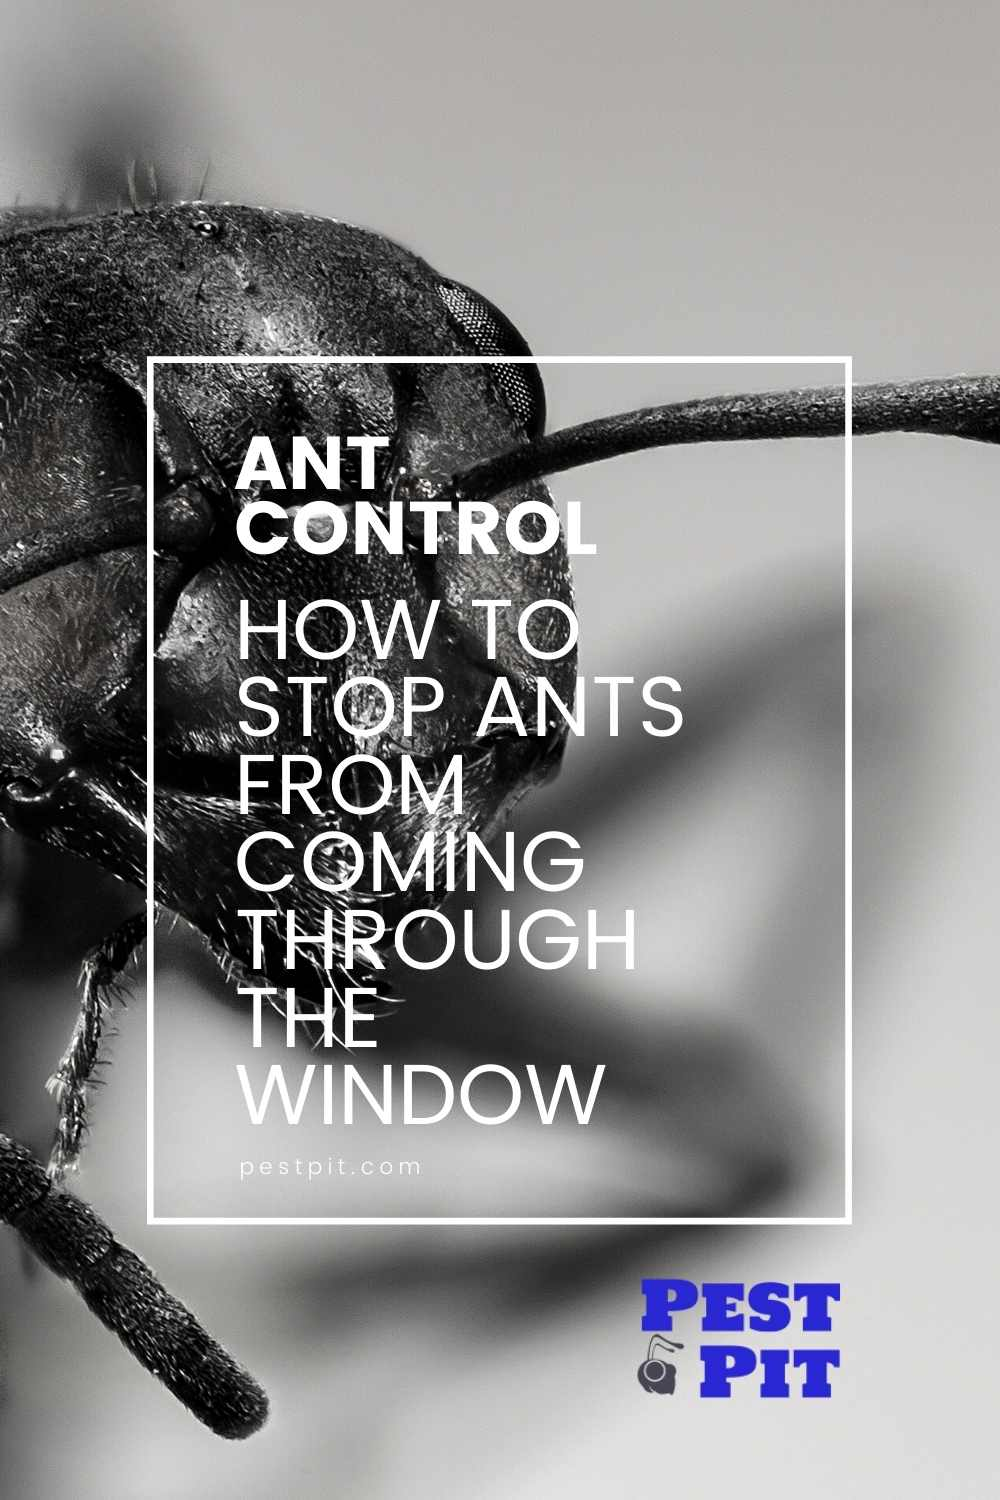 How To Stop Ants From Coming Through The Window